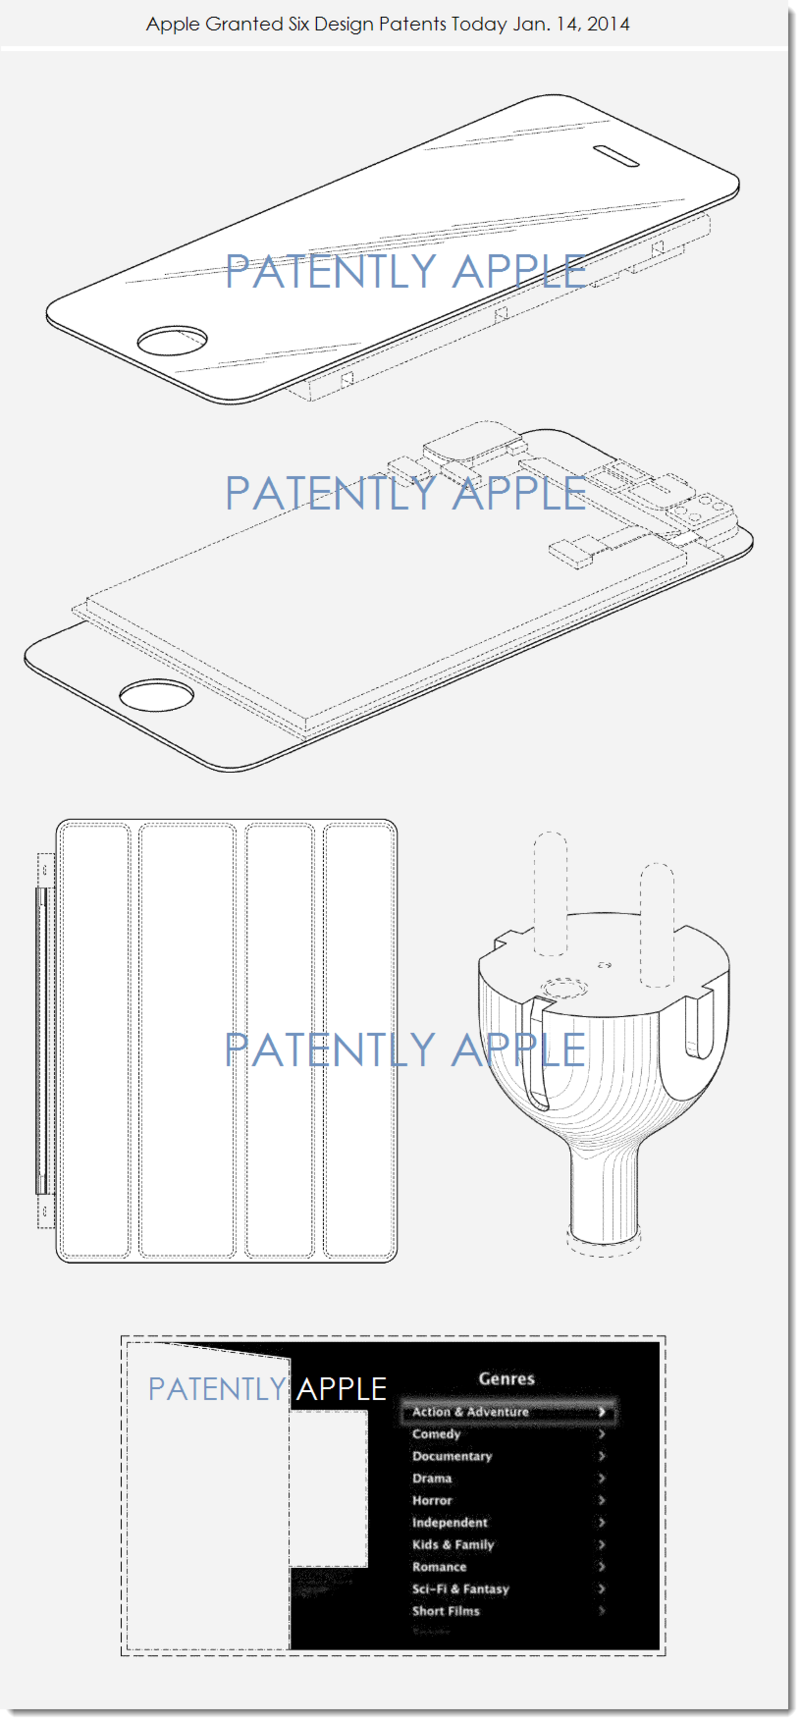 5. Apple granted 6 design patents Jan 14, 2014